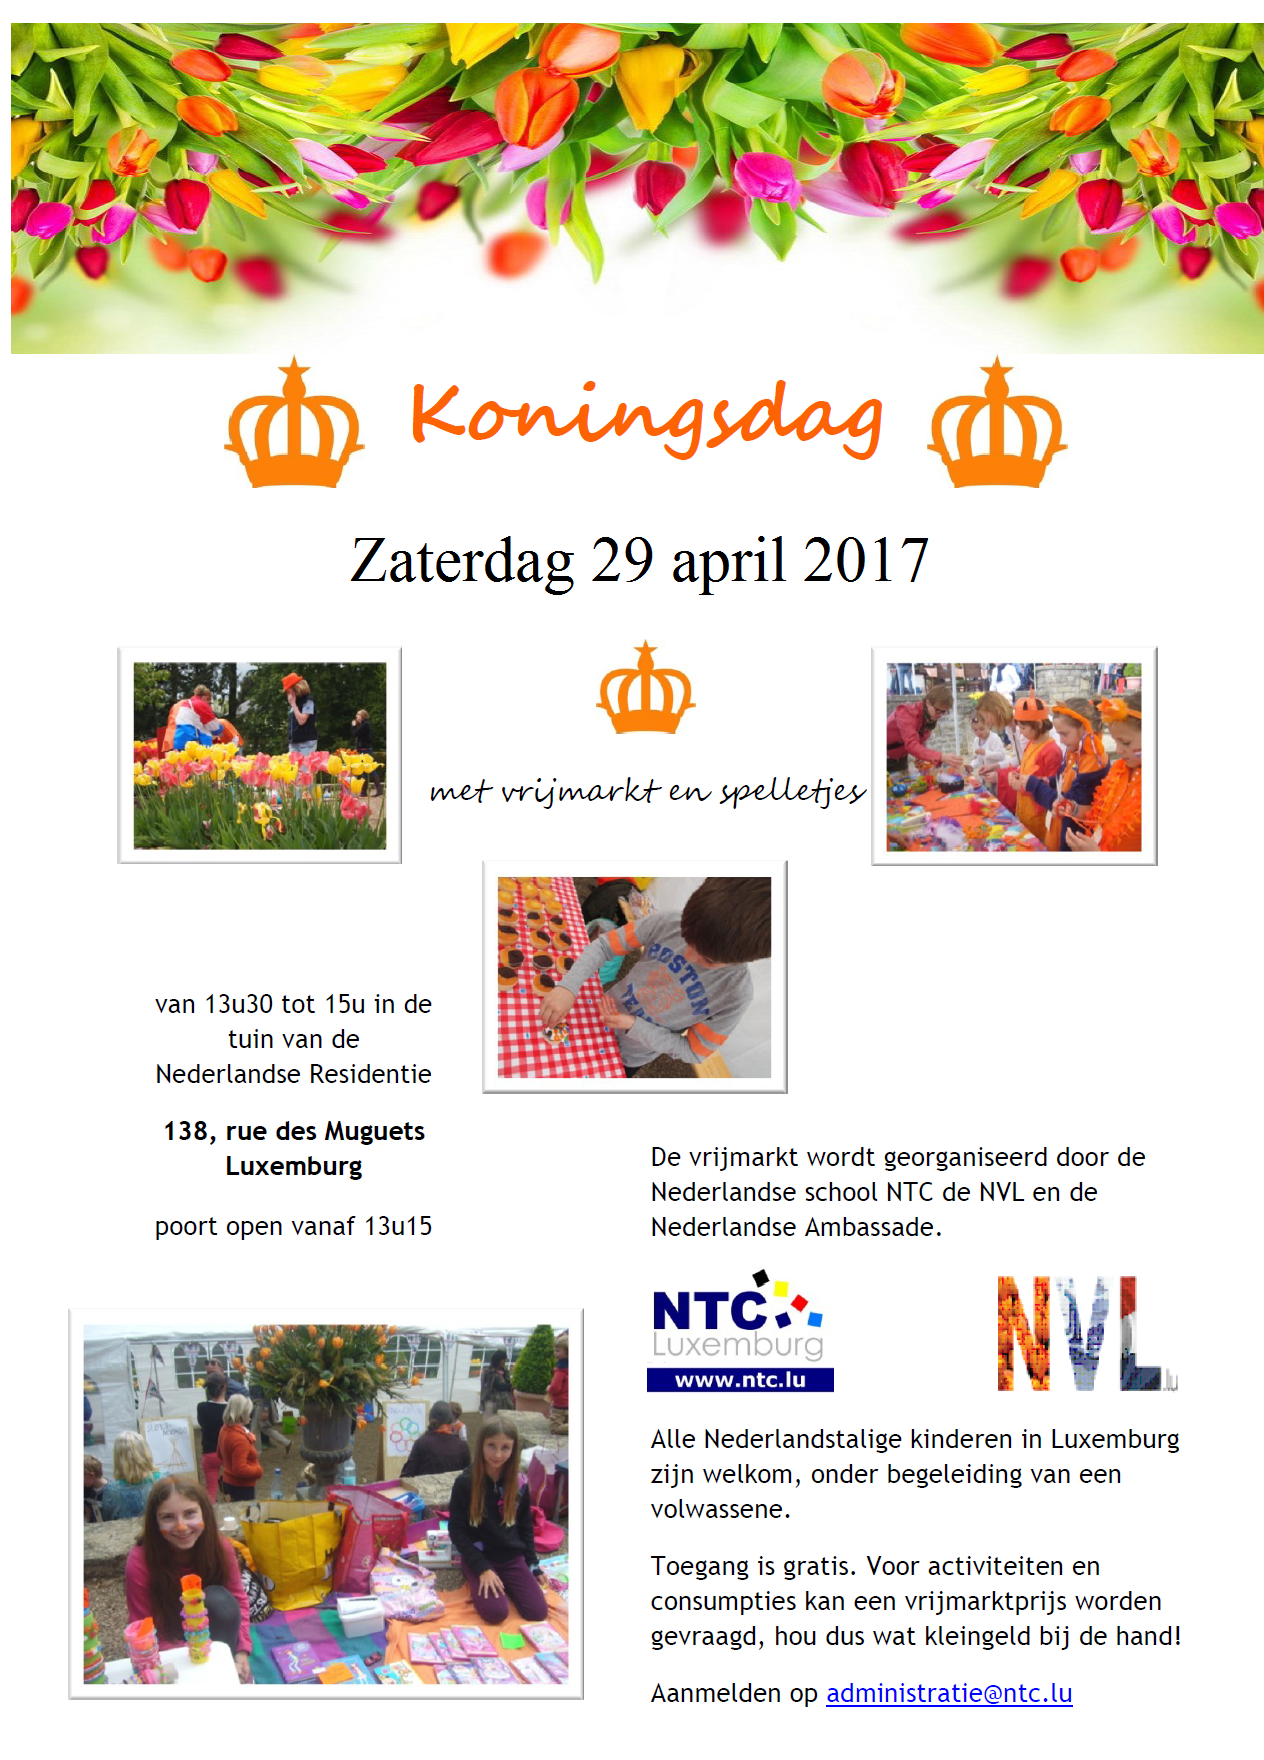 Uitnodiging Vrijmarkt Koningsdag 29 april 2017